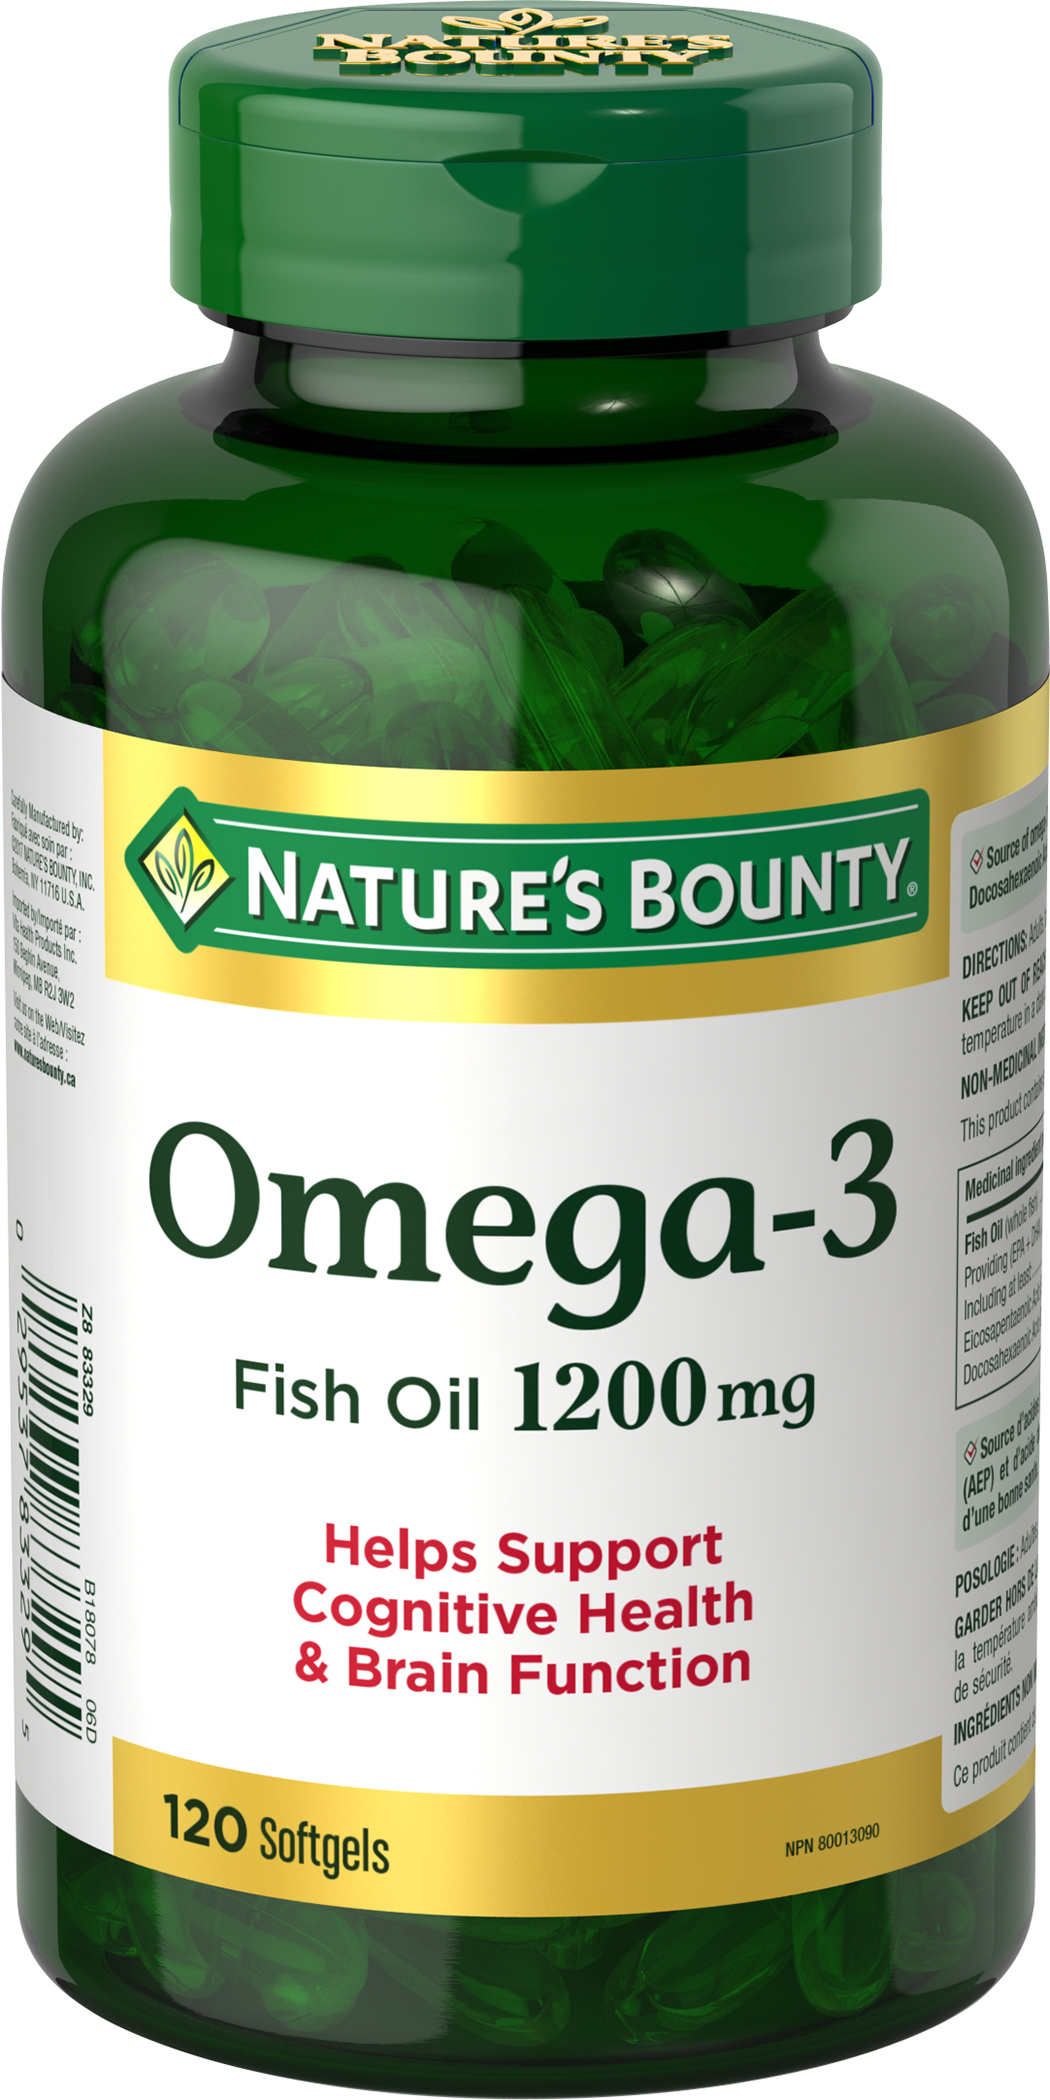 Omega-3 Fish Oil 1200mg